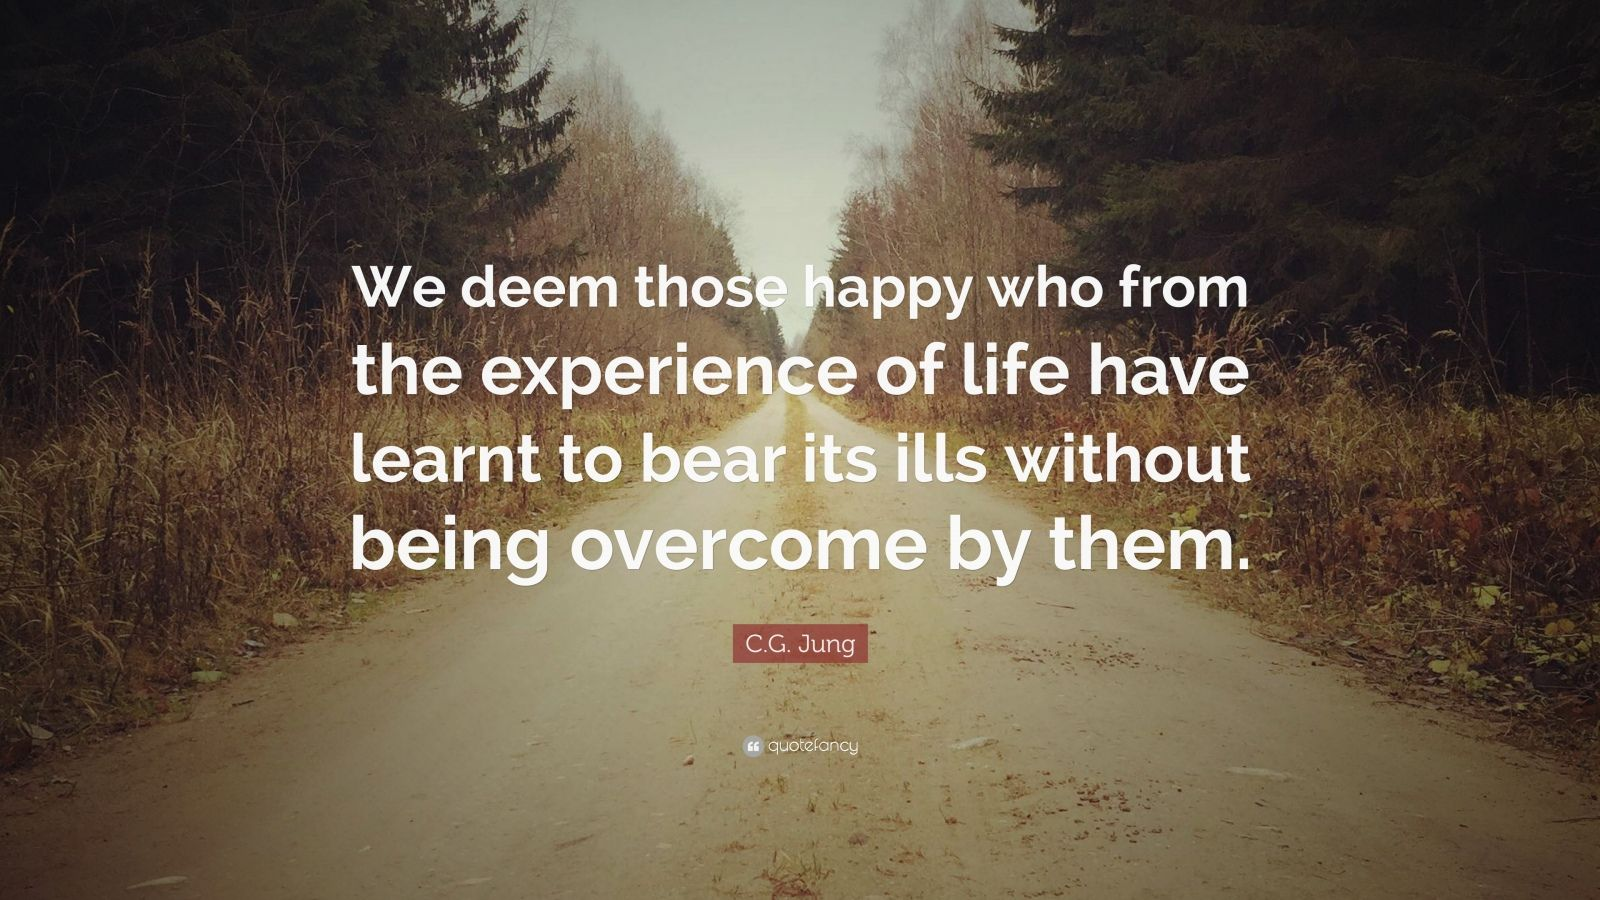 "C.G. Jung Quote: ""We deem those happy who from the experience of life have learnt to bear its ills without being overcome by them."""